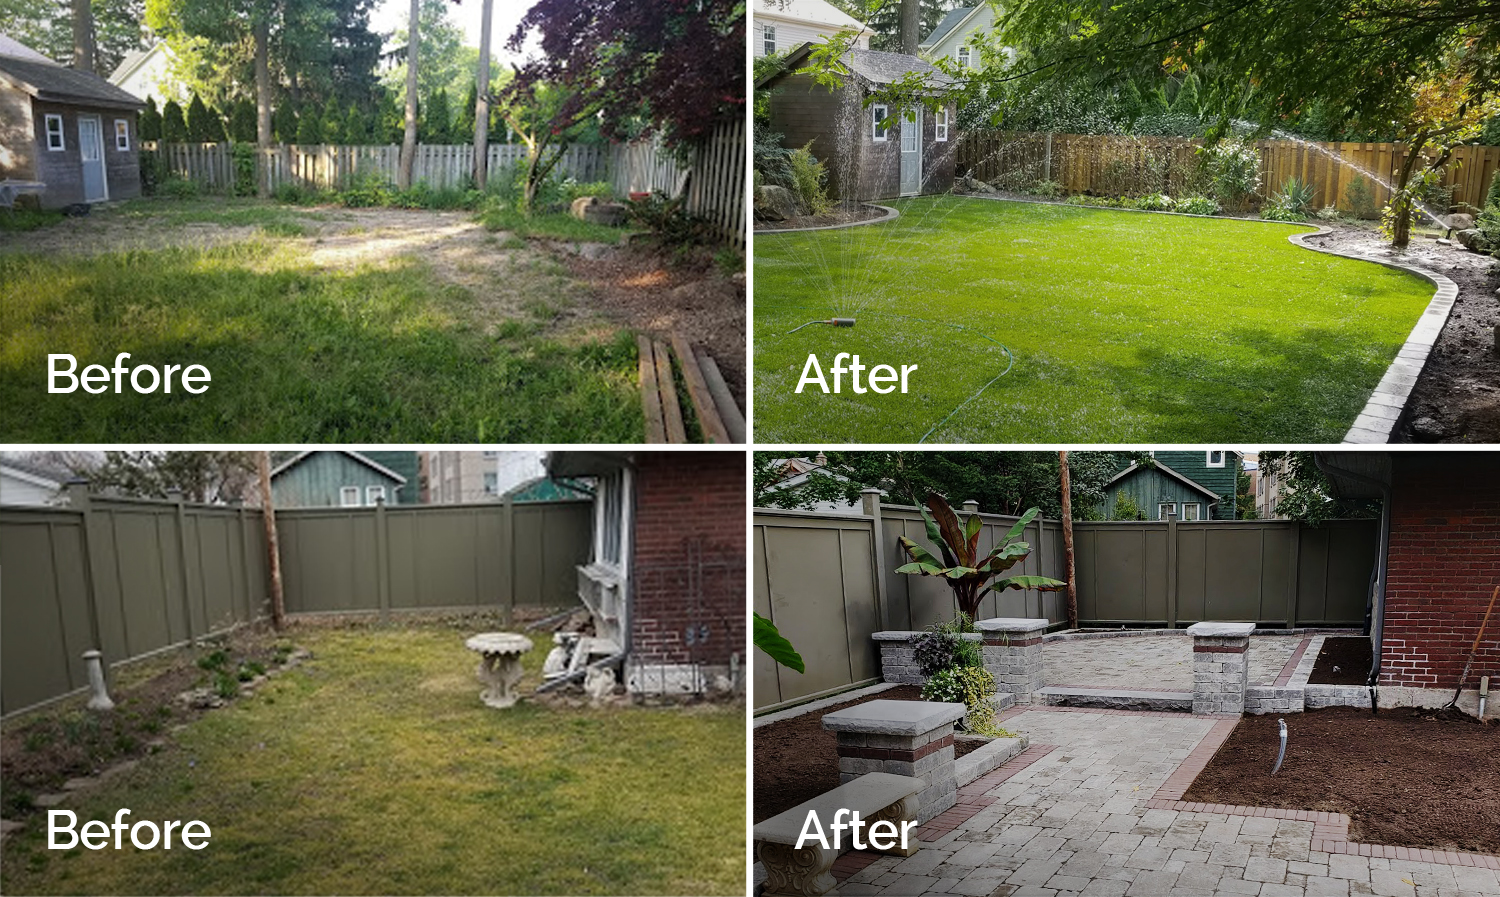 Before and After Views of Landscaping Projects